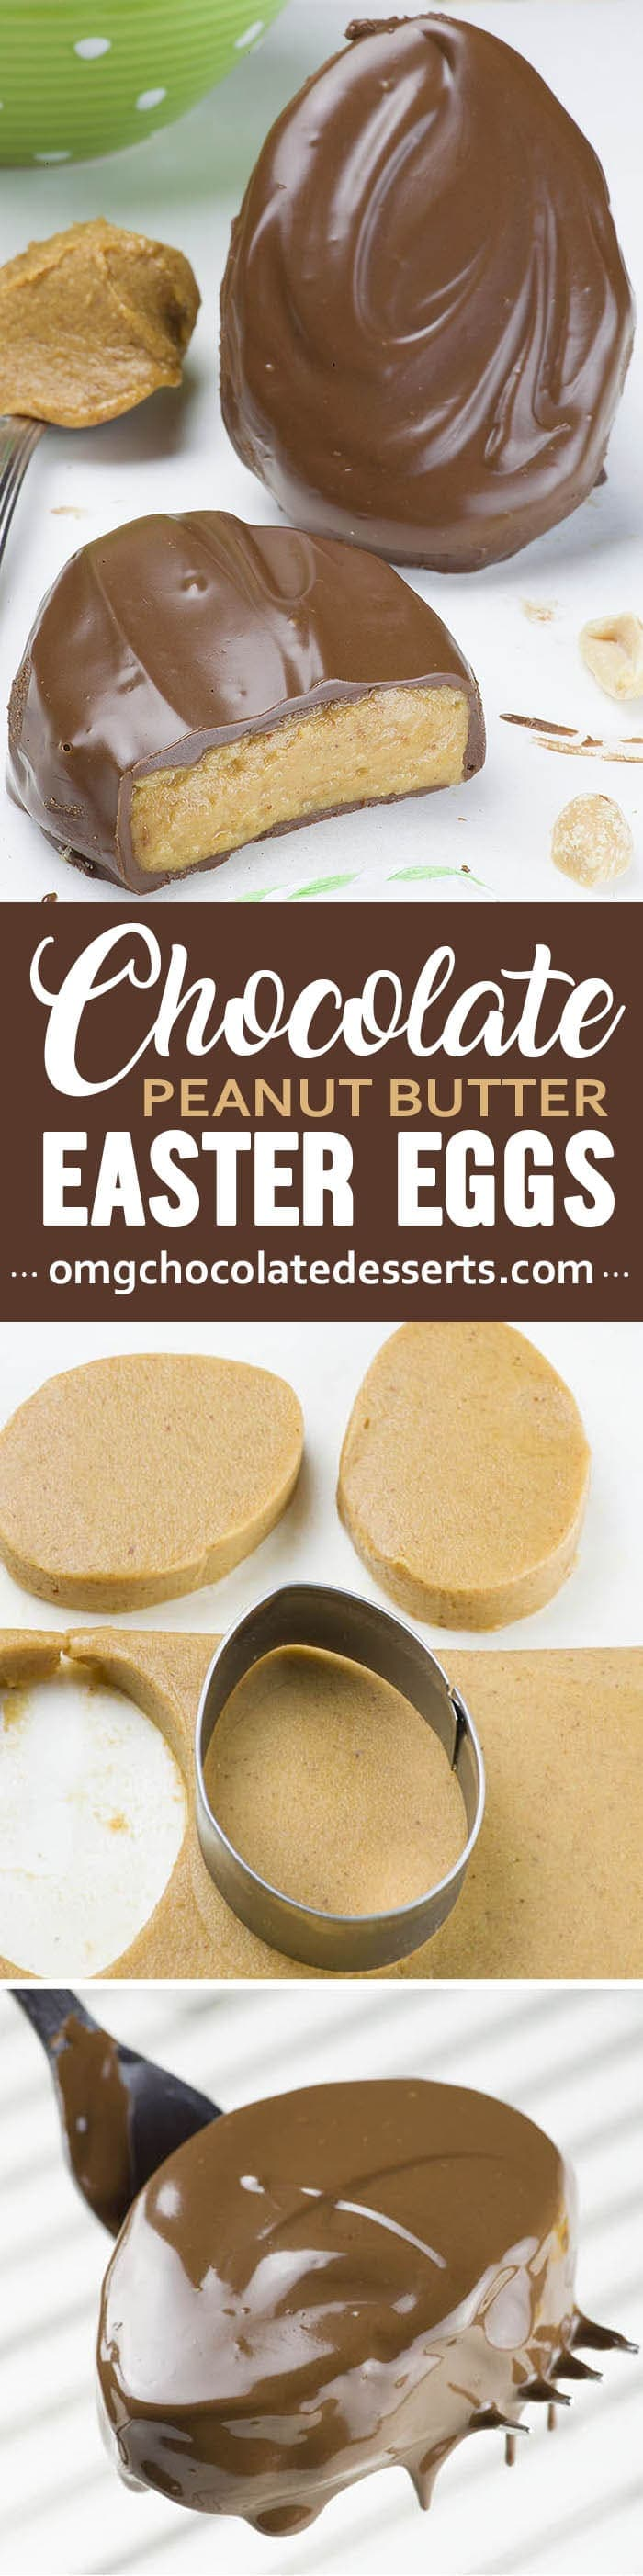 These Peanut Butter Eggs are a homemade copycat version of Reese's Peanut Butter Eggs, an Easter favorite. A smooth peanut butter filling covered in chocolate. Yummy !!!